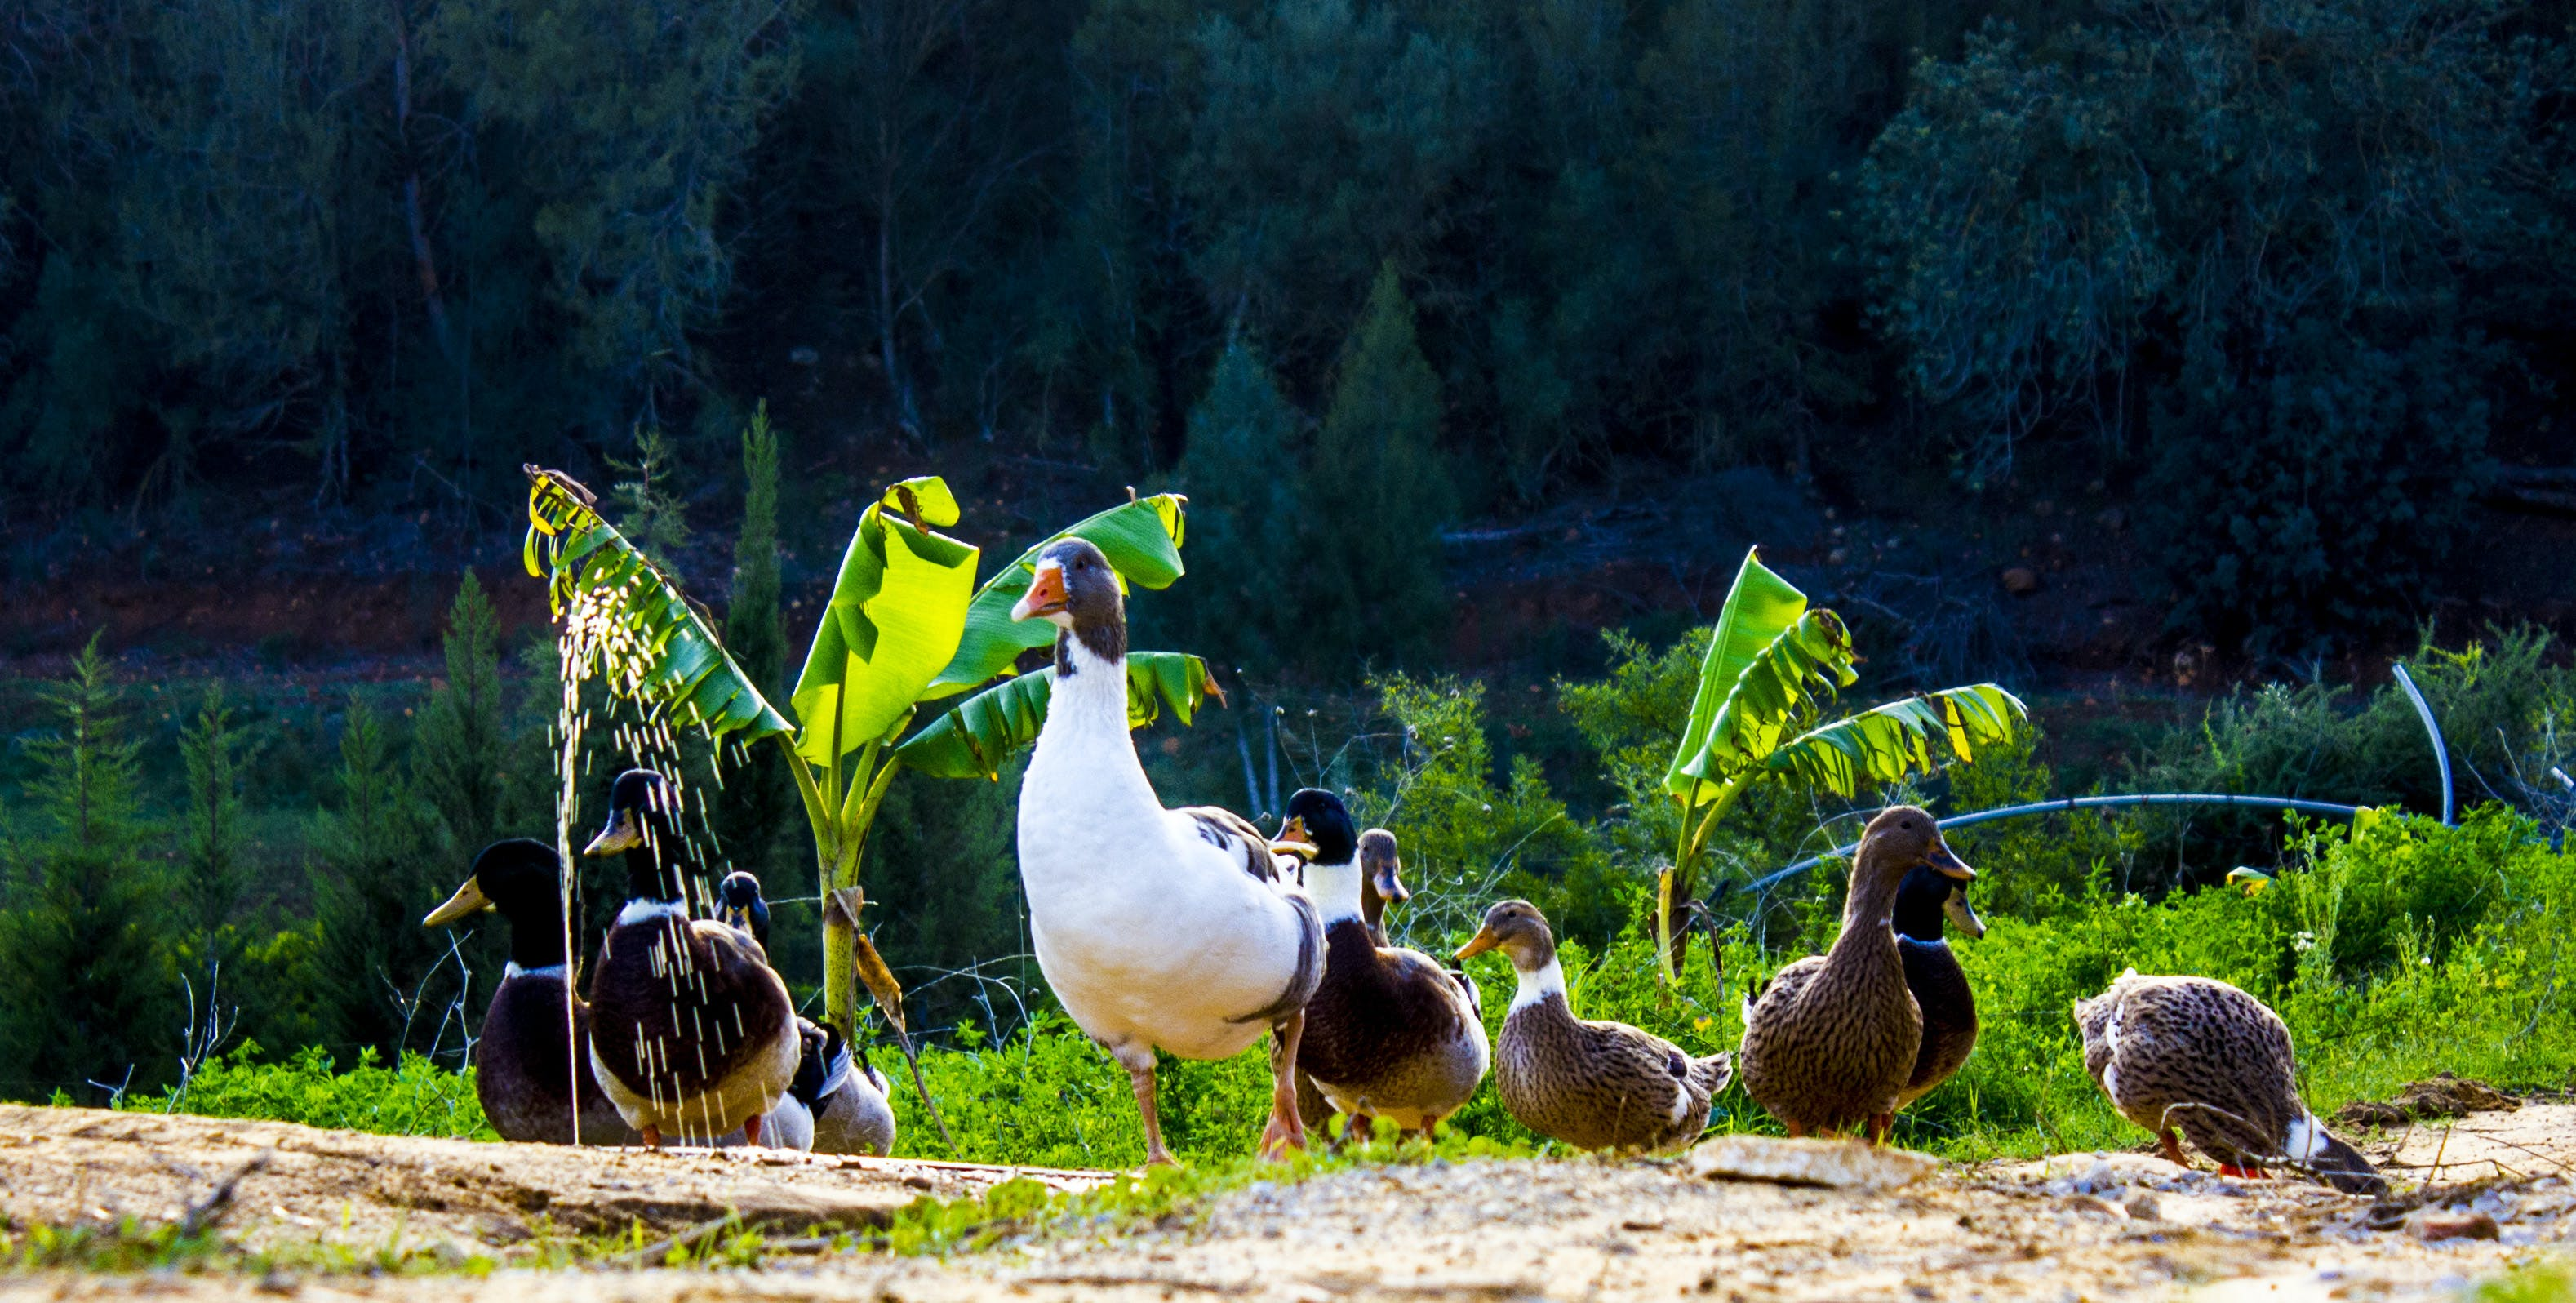 Free stock photo of animals, duck, landscape, nature